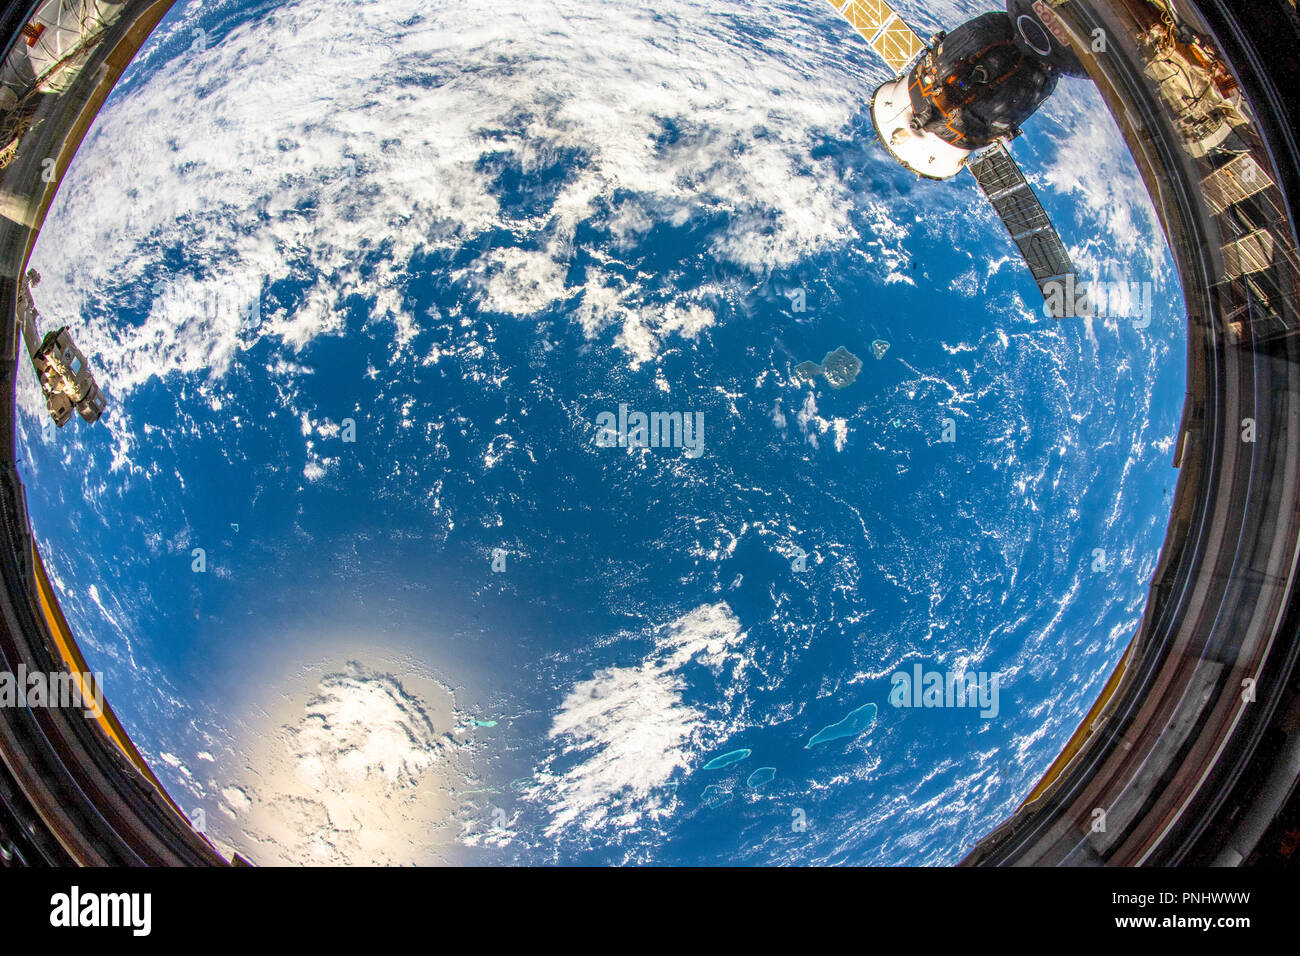 Beautiful planet Earth seen from space. Contrasting blue and yellow over the surface. This image is a NASA handout - Stock Image